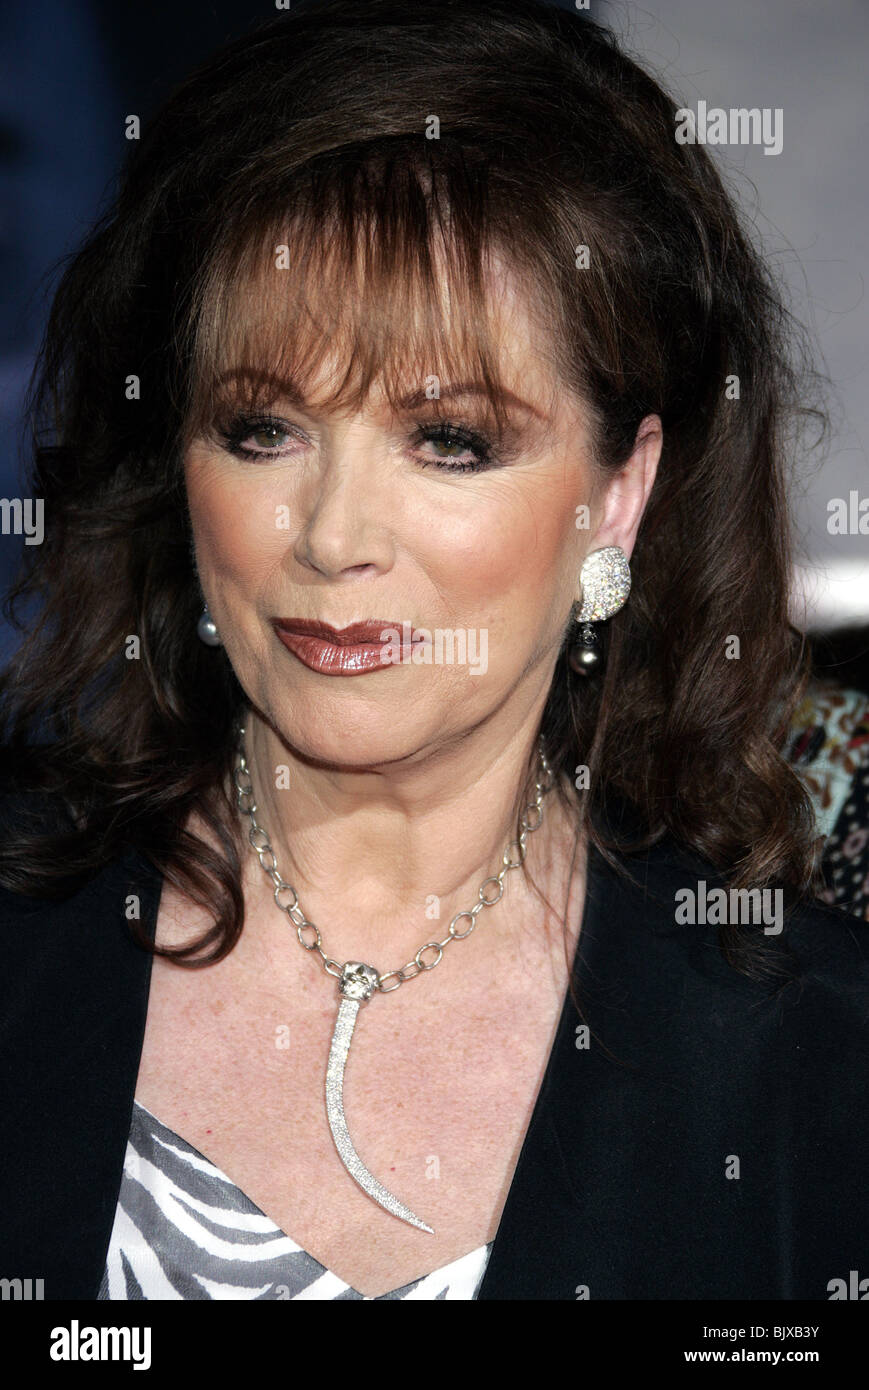 JACKIE COLLINS THE PRESTIGE WORLD PREMIERE HOLLYWOOD LOS ANGELES USA 17 October 2006 - Stock Image